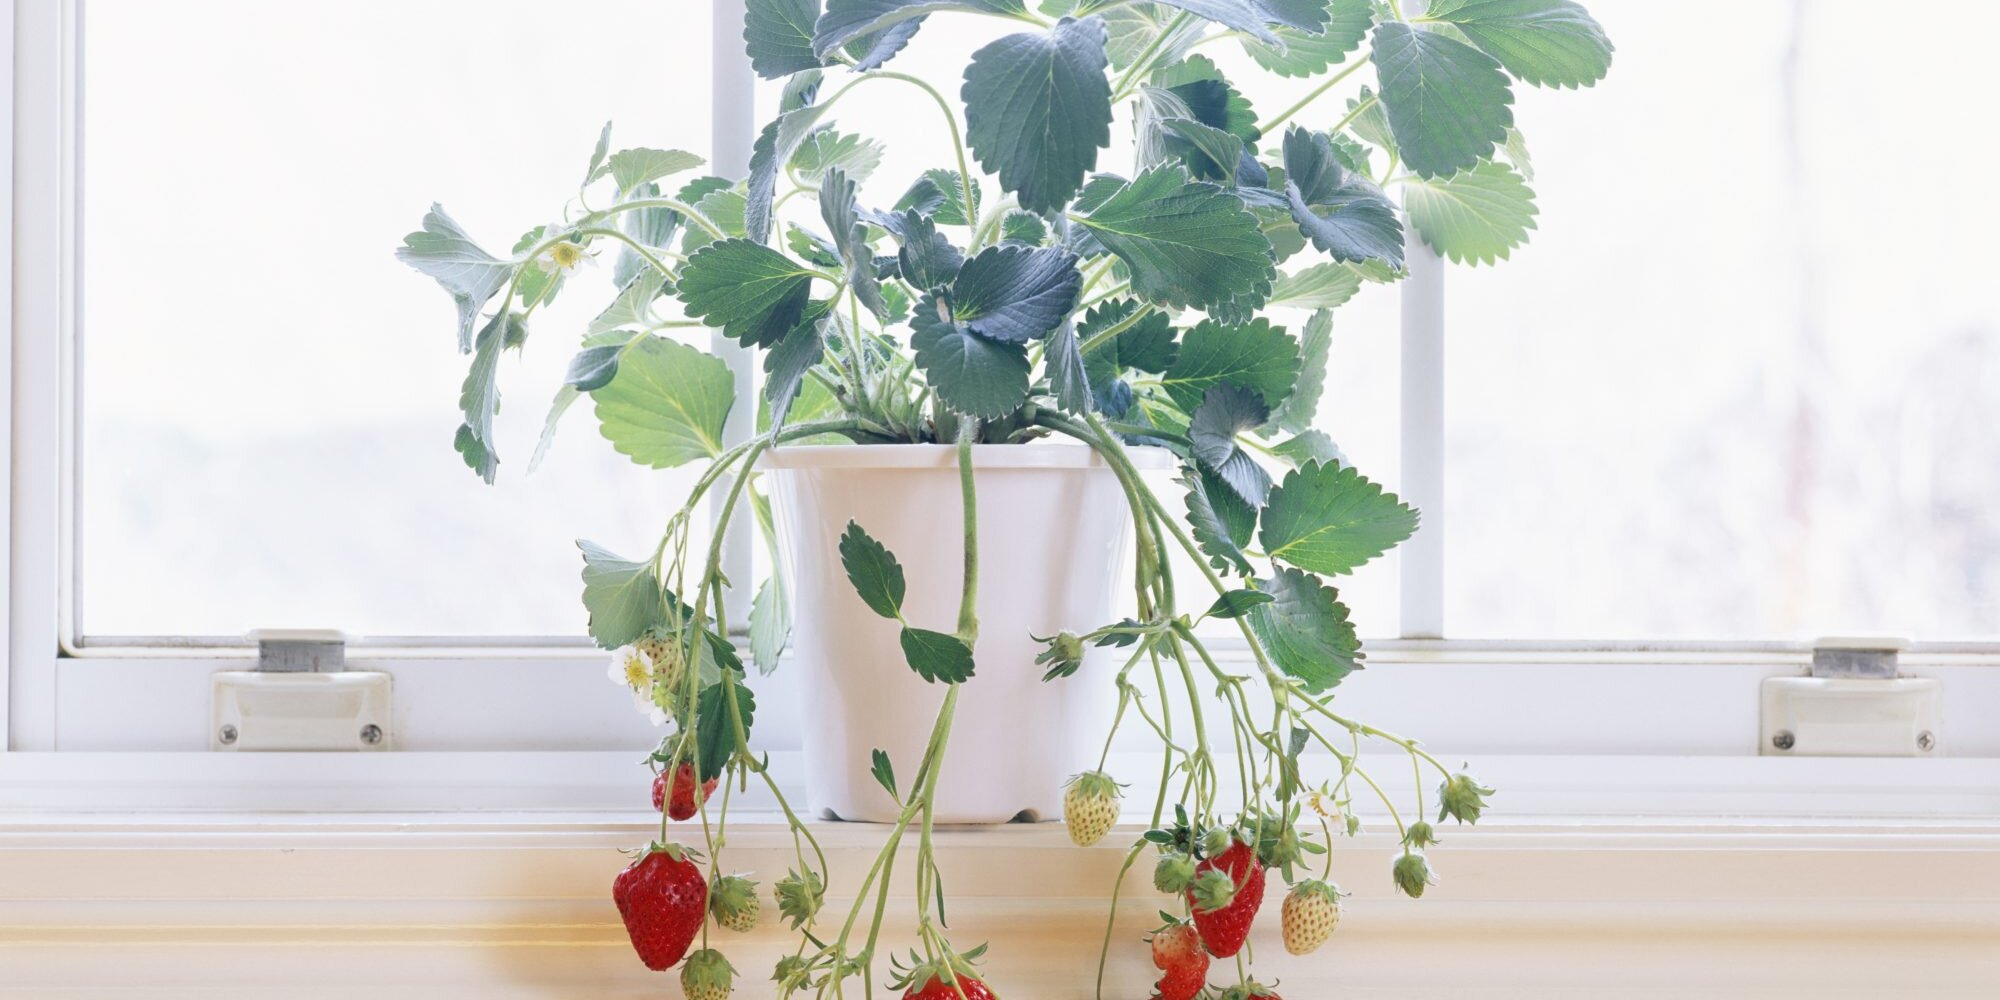 10 Fruits and Vegetables You Can Grow Indoors